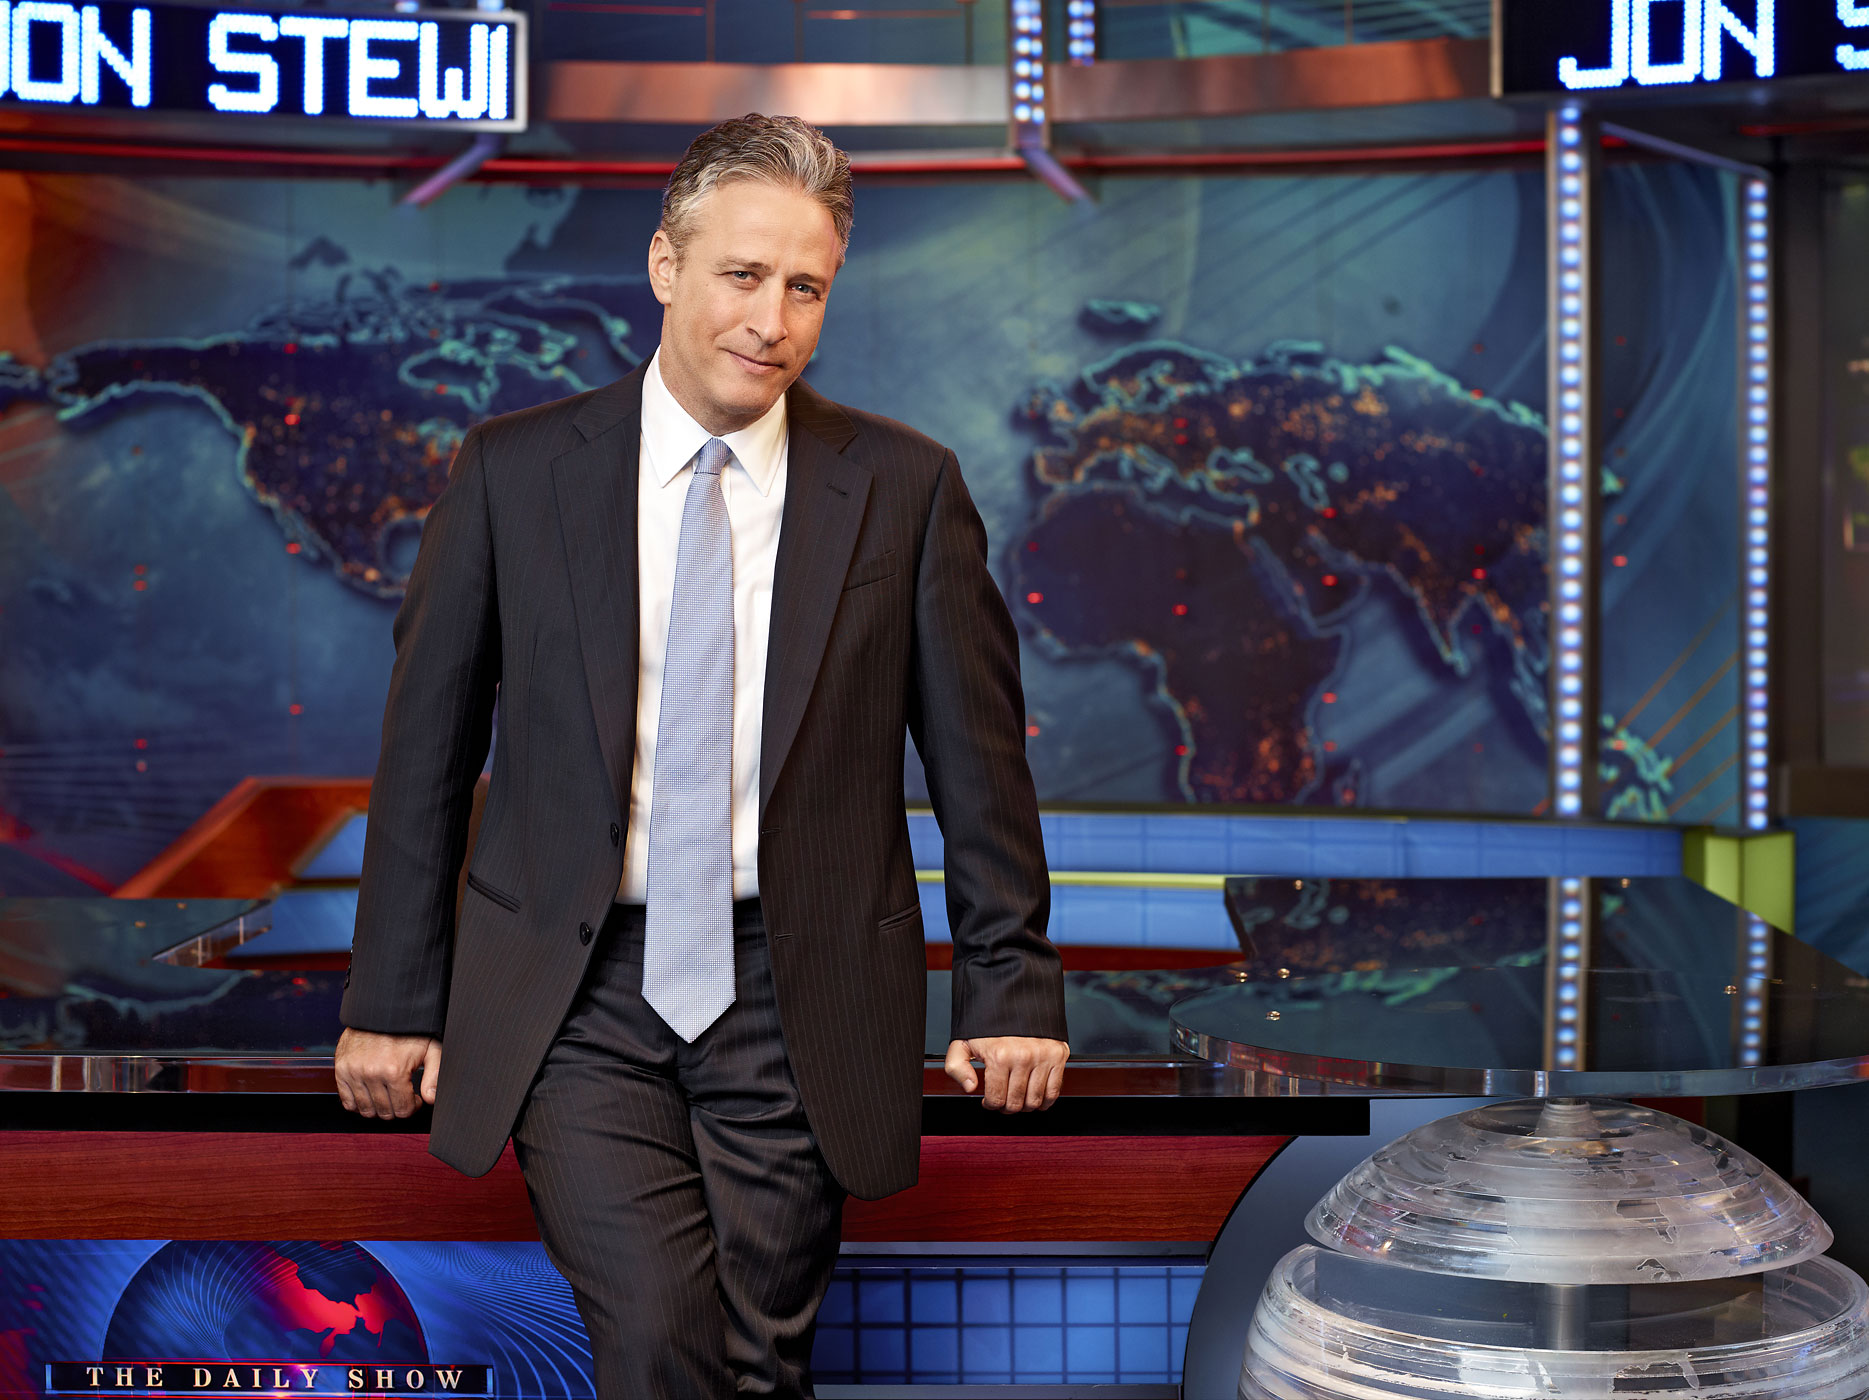 Jon Stewart announces his retirement for the end of 2015.